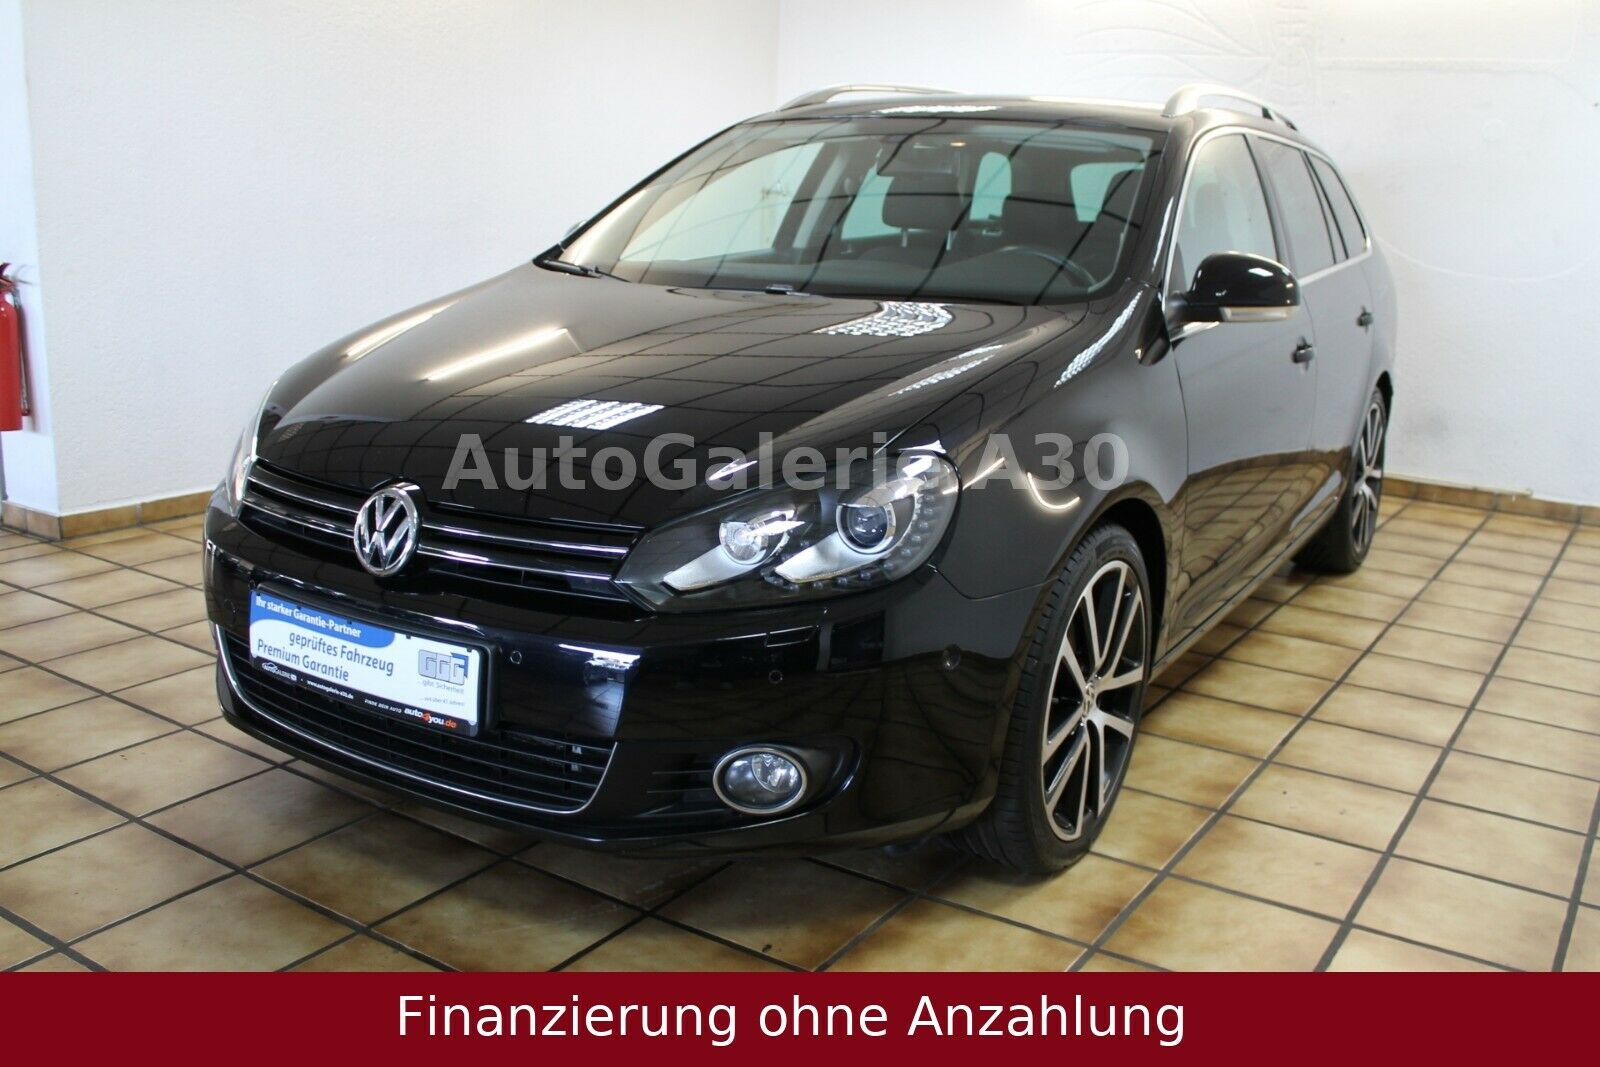 VW Golf VI Variant Highline Navi Panorama Bi-Xenon